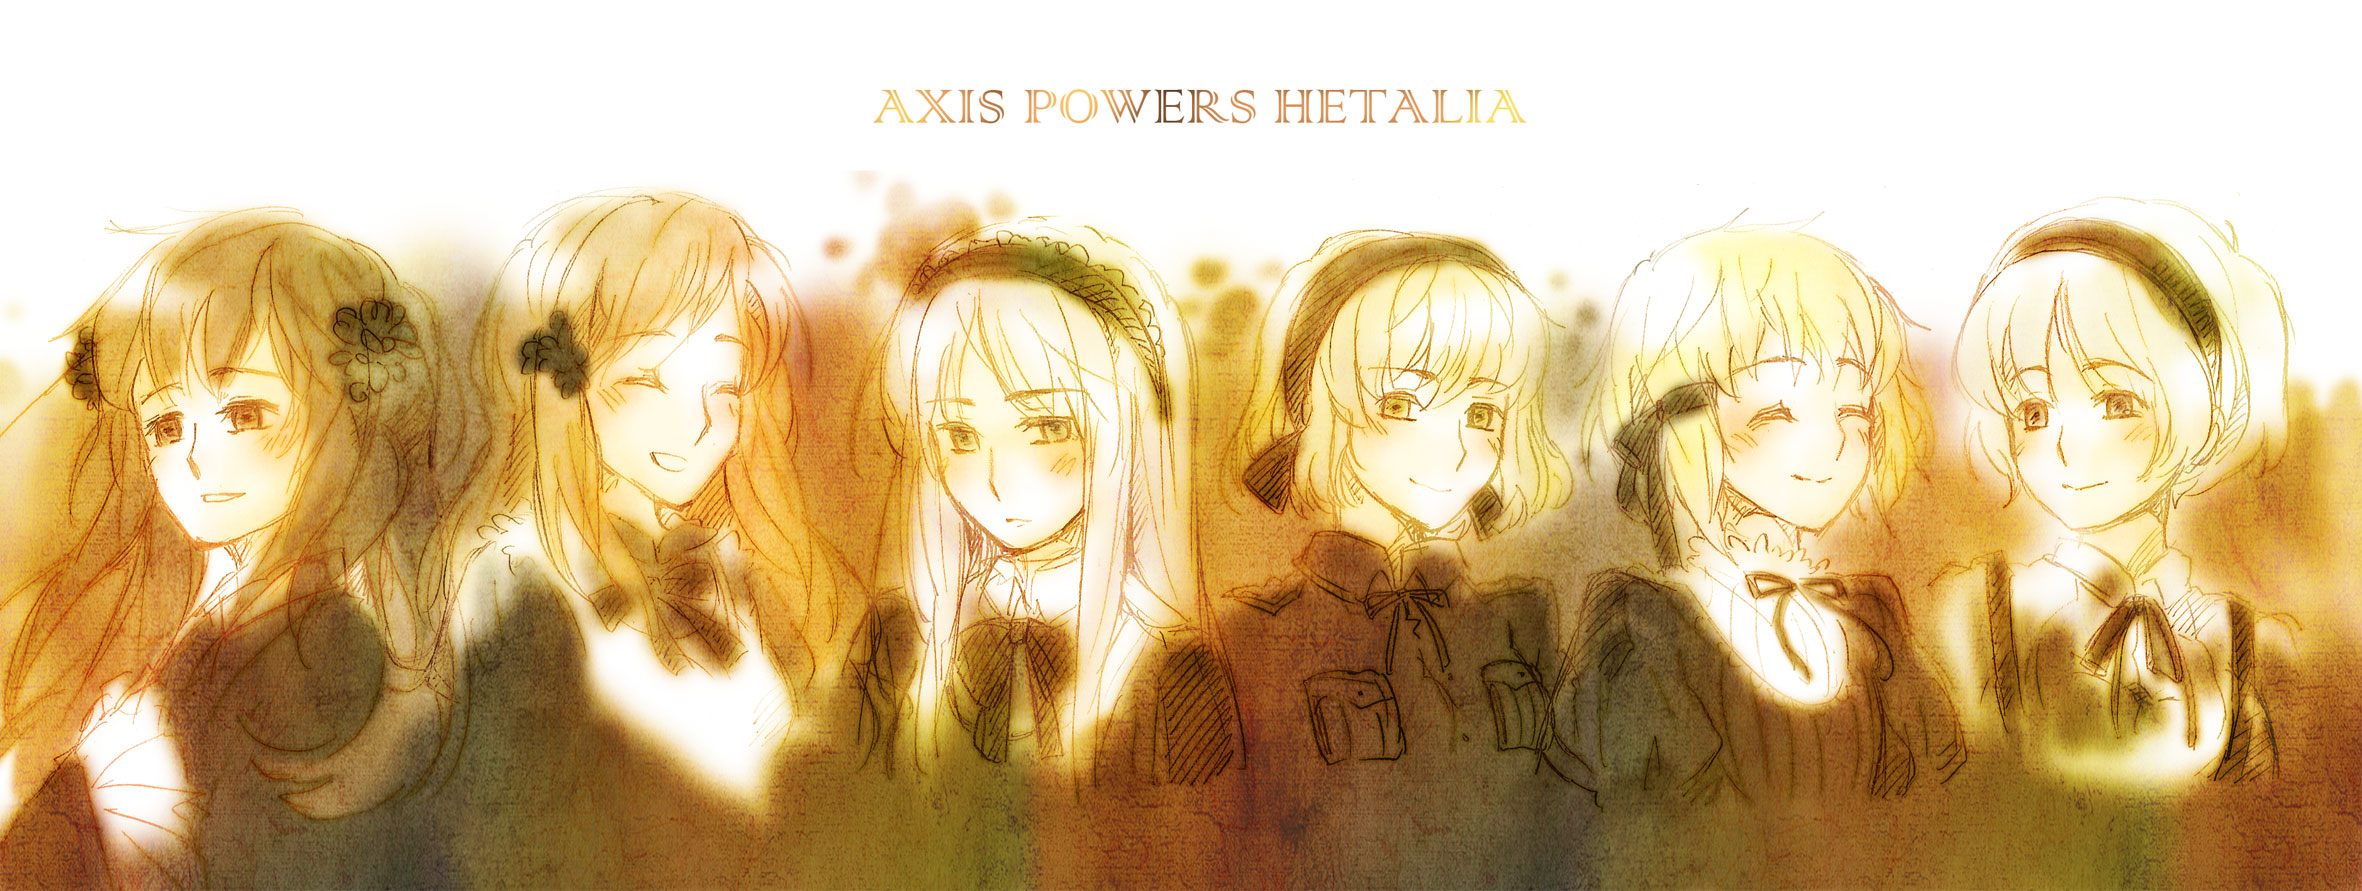 Girls of hetalia - axis powers